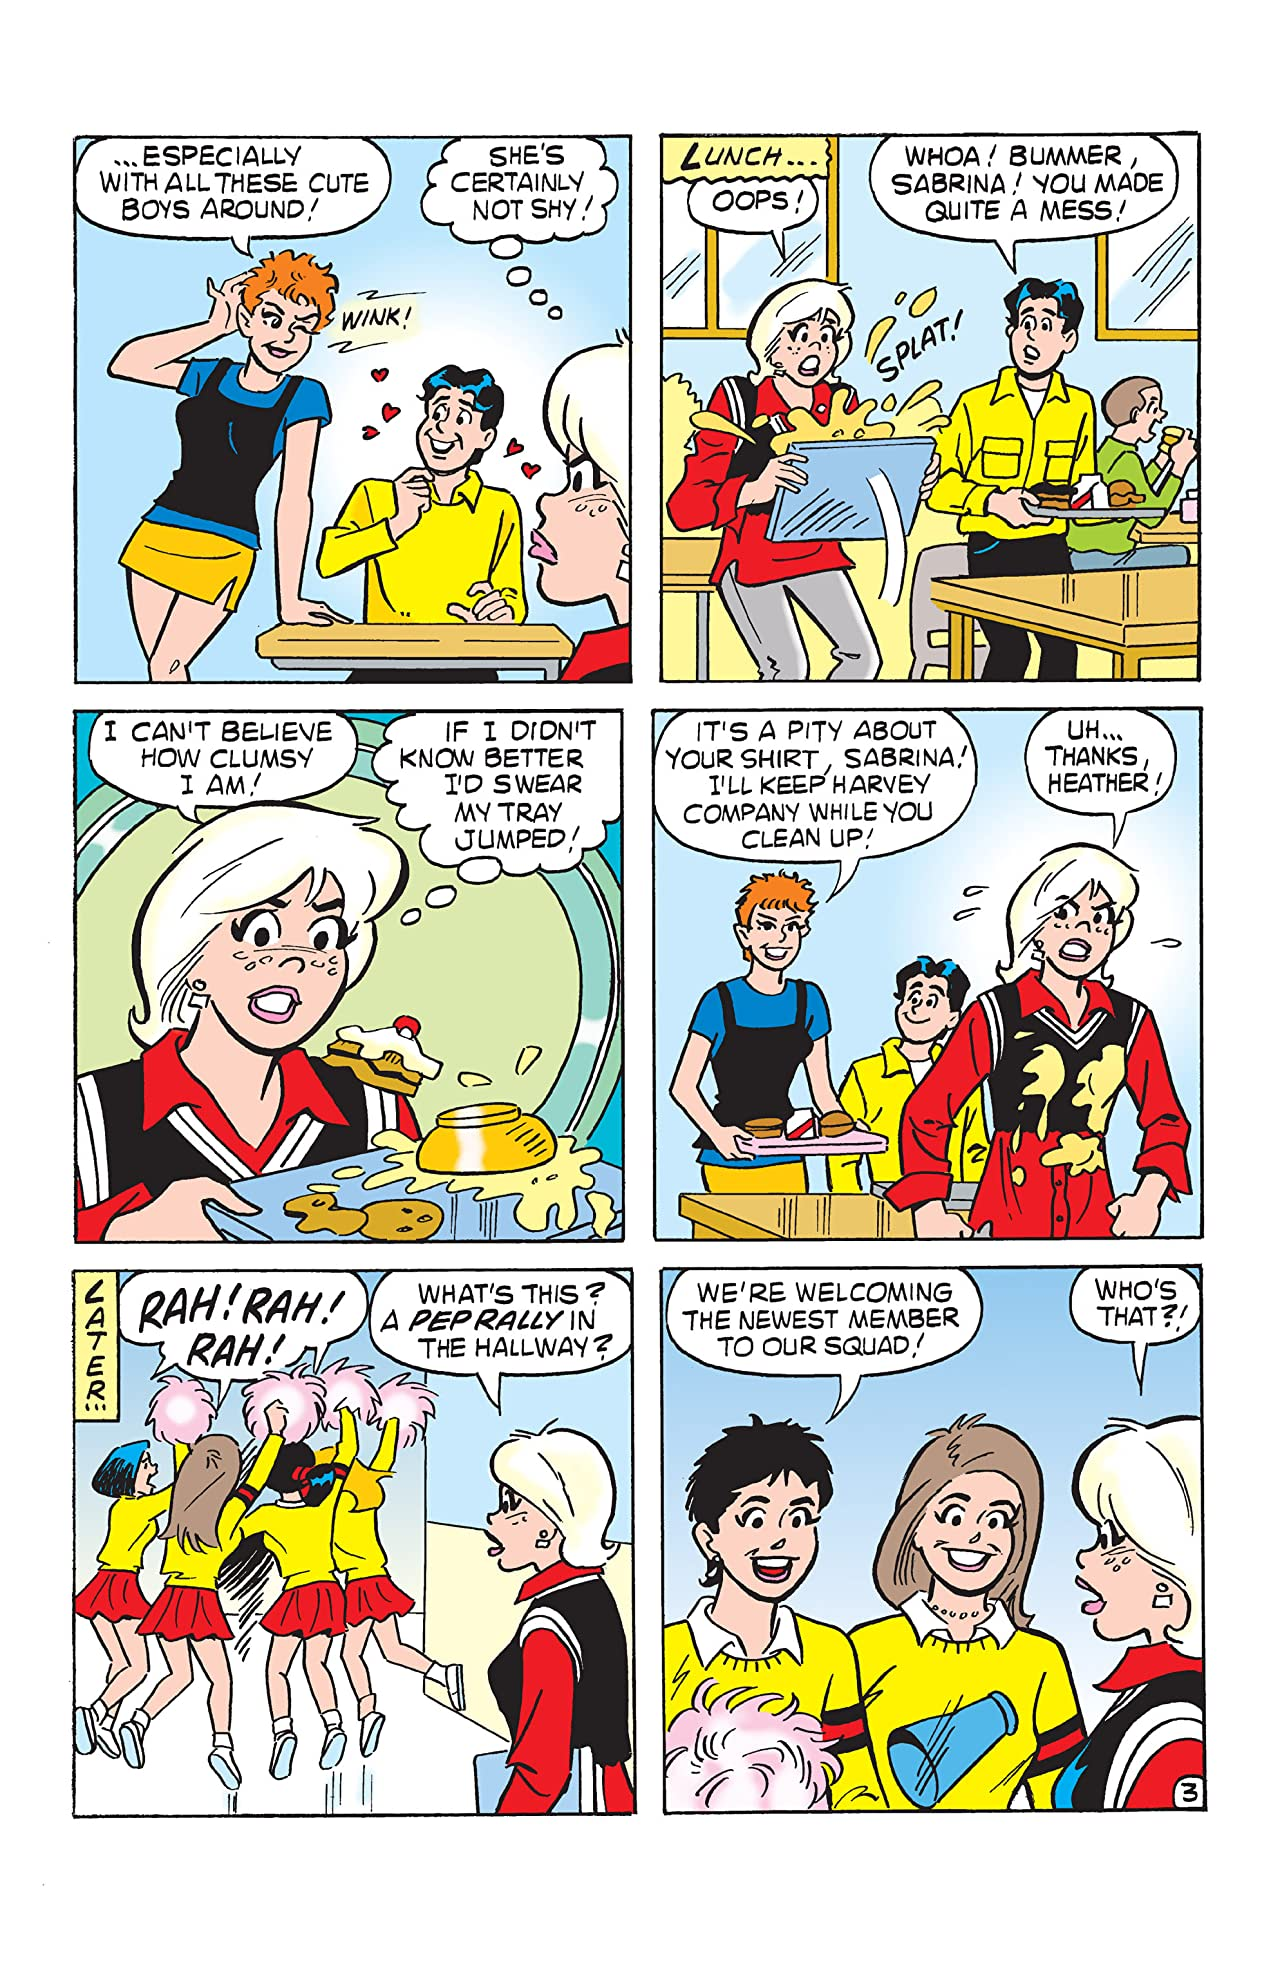 Sabrina the Teenage Witch #14